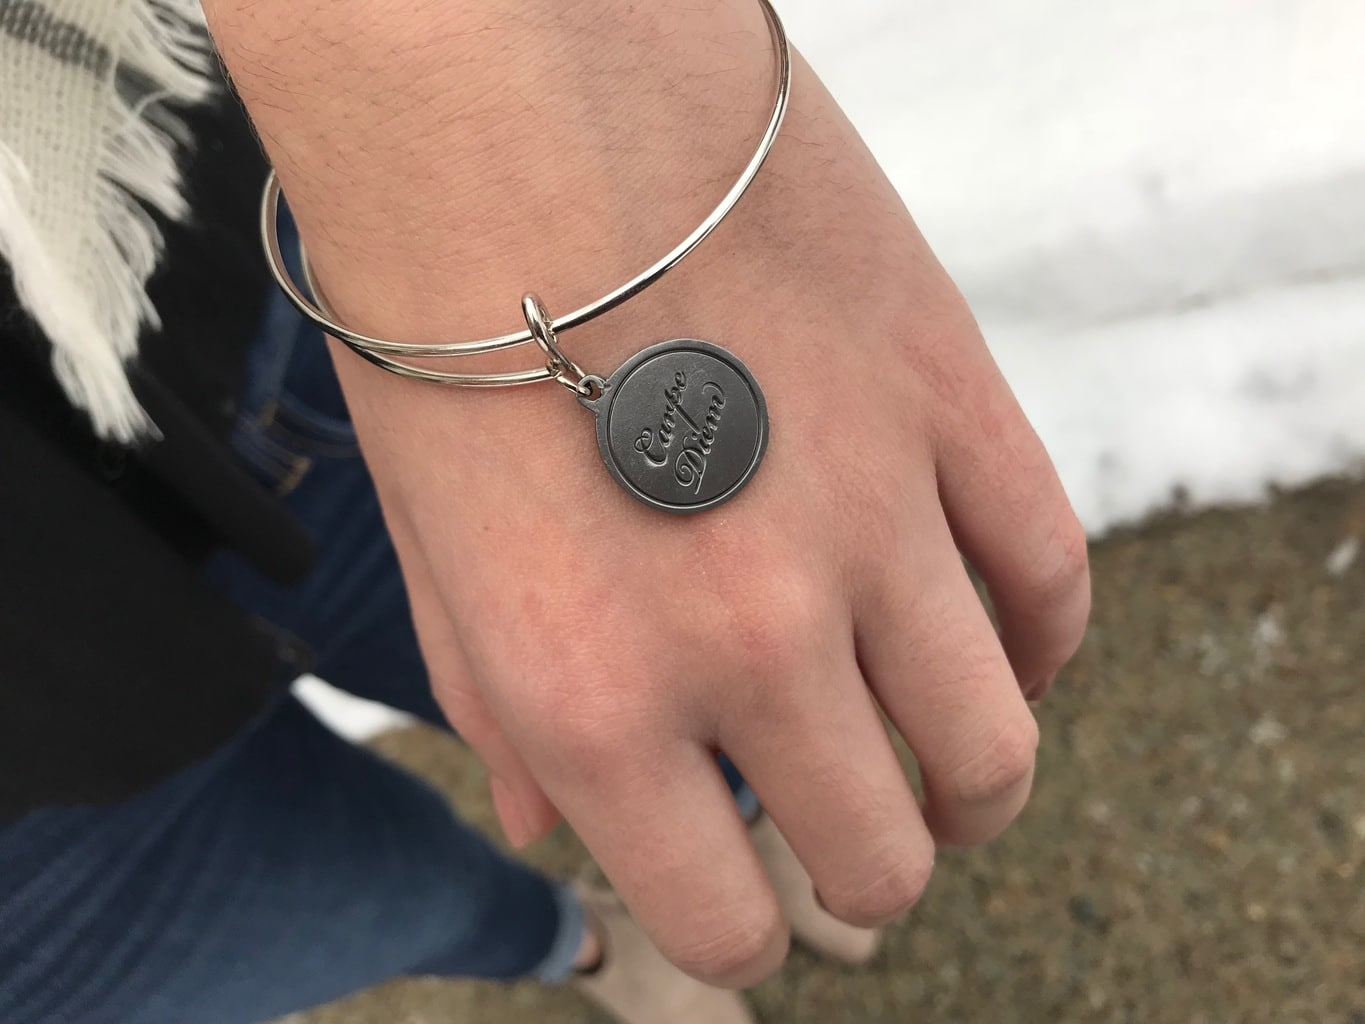 Erica wears a silver Alex & Ani bracelet with the inscription